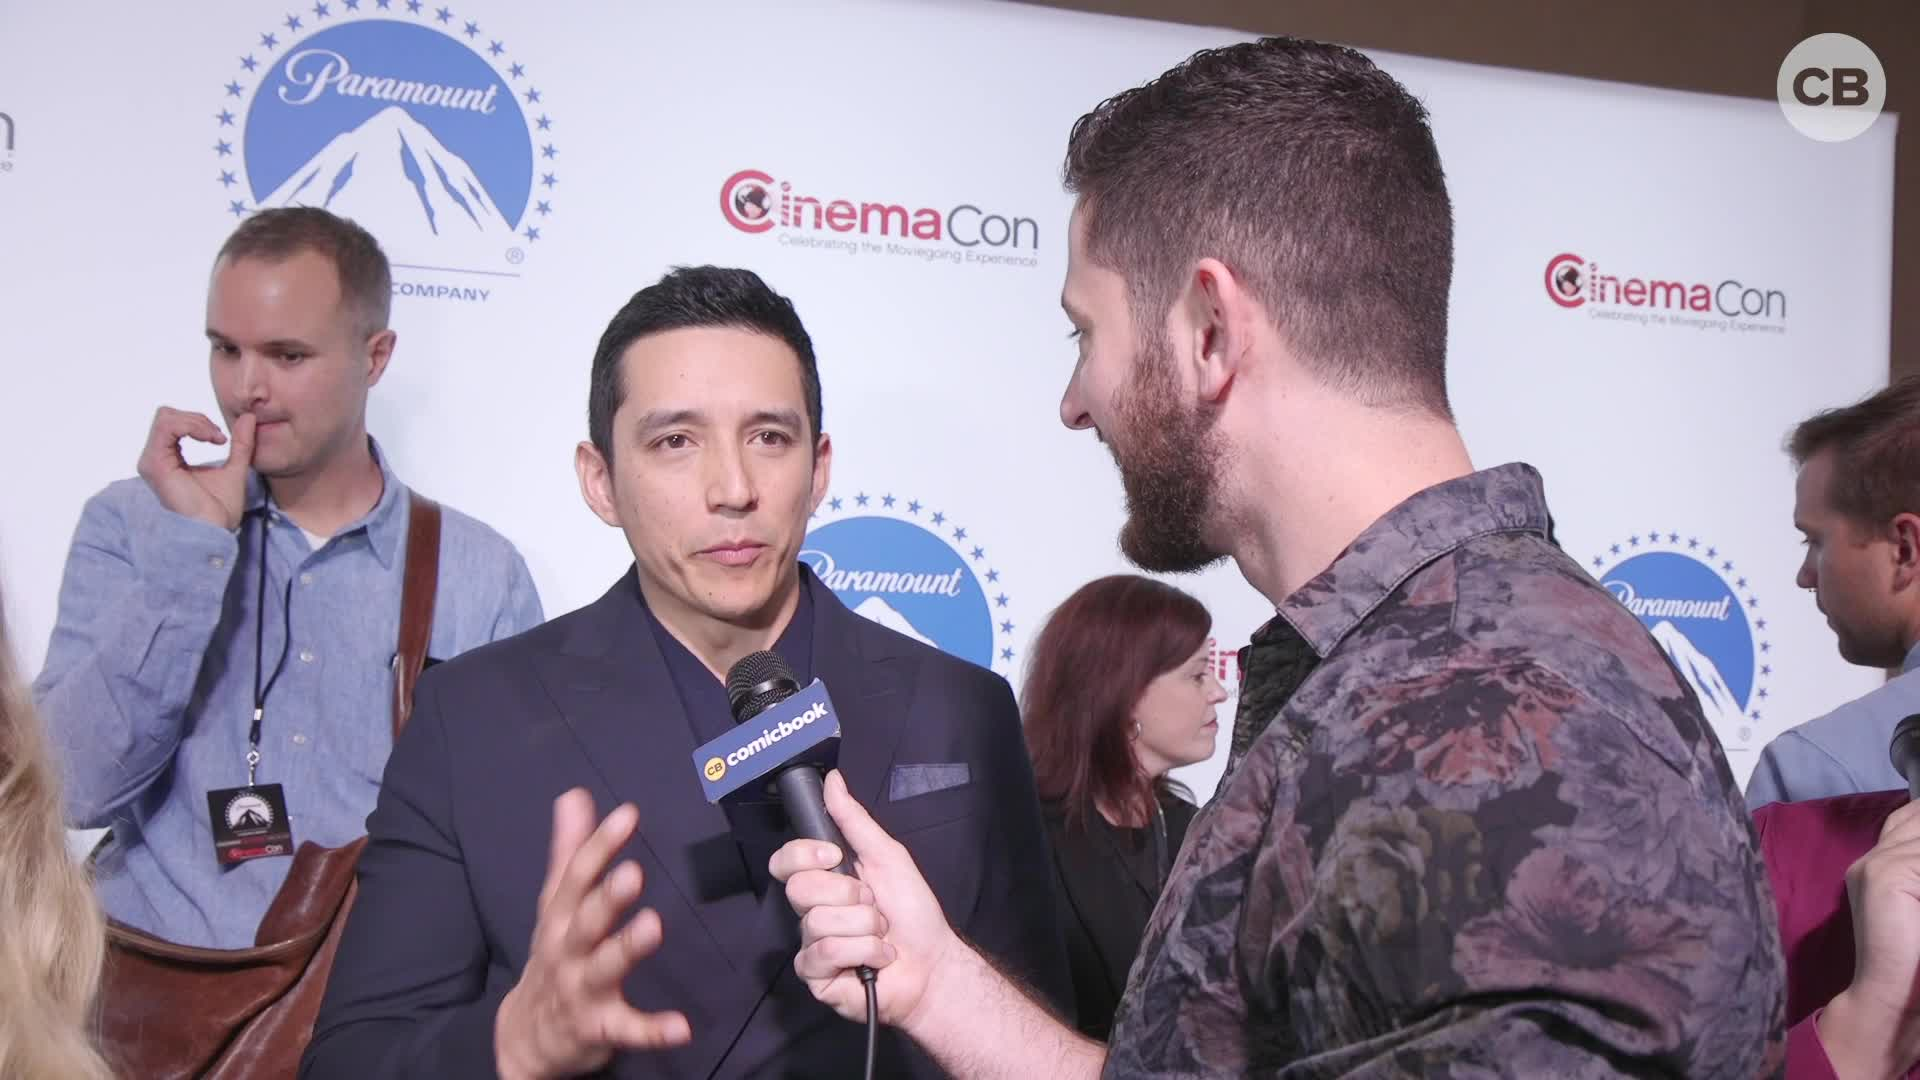 Gabriel Luna Talks 'Terminator: Dark Fate' - CinemaCon Interview screen capture